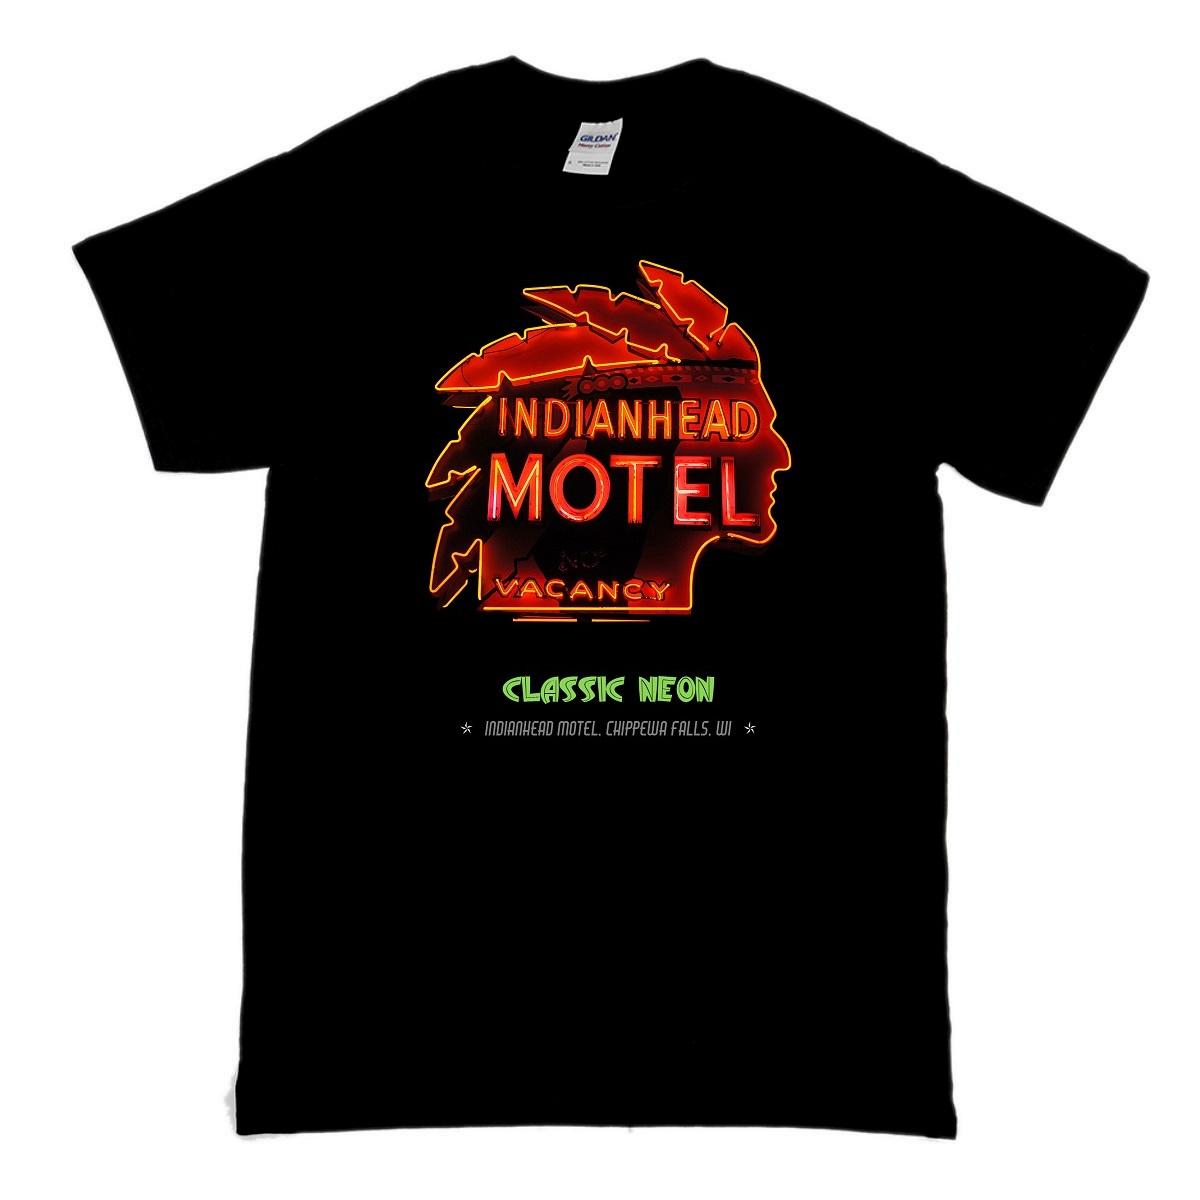 This is a t-shirt featuring the red neon sign of the Indianhead Motel done in the Americana Mid Century style from the 1950's and part of the Classic Neon t-shirt collection